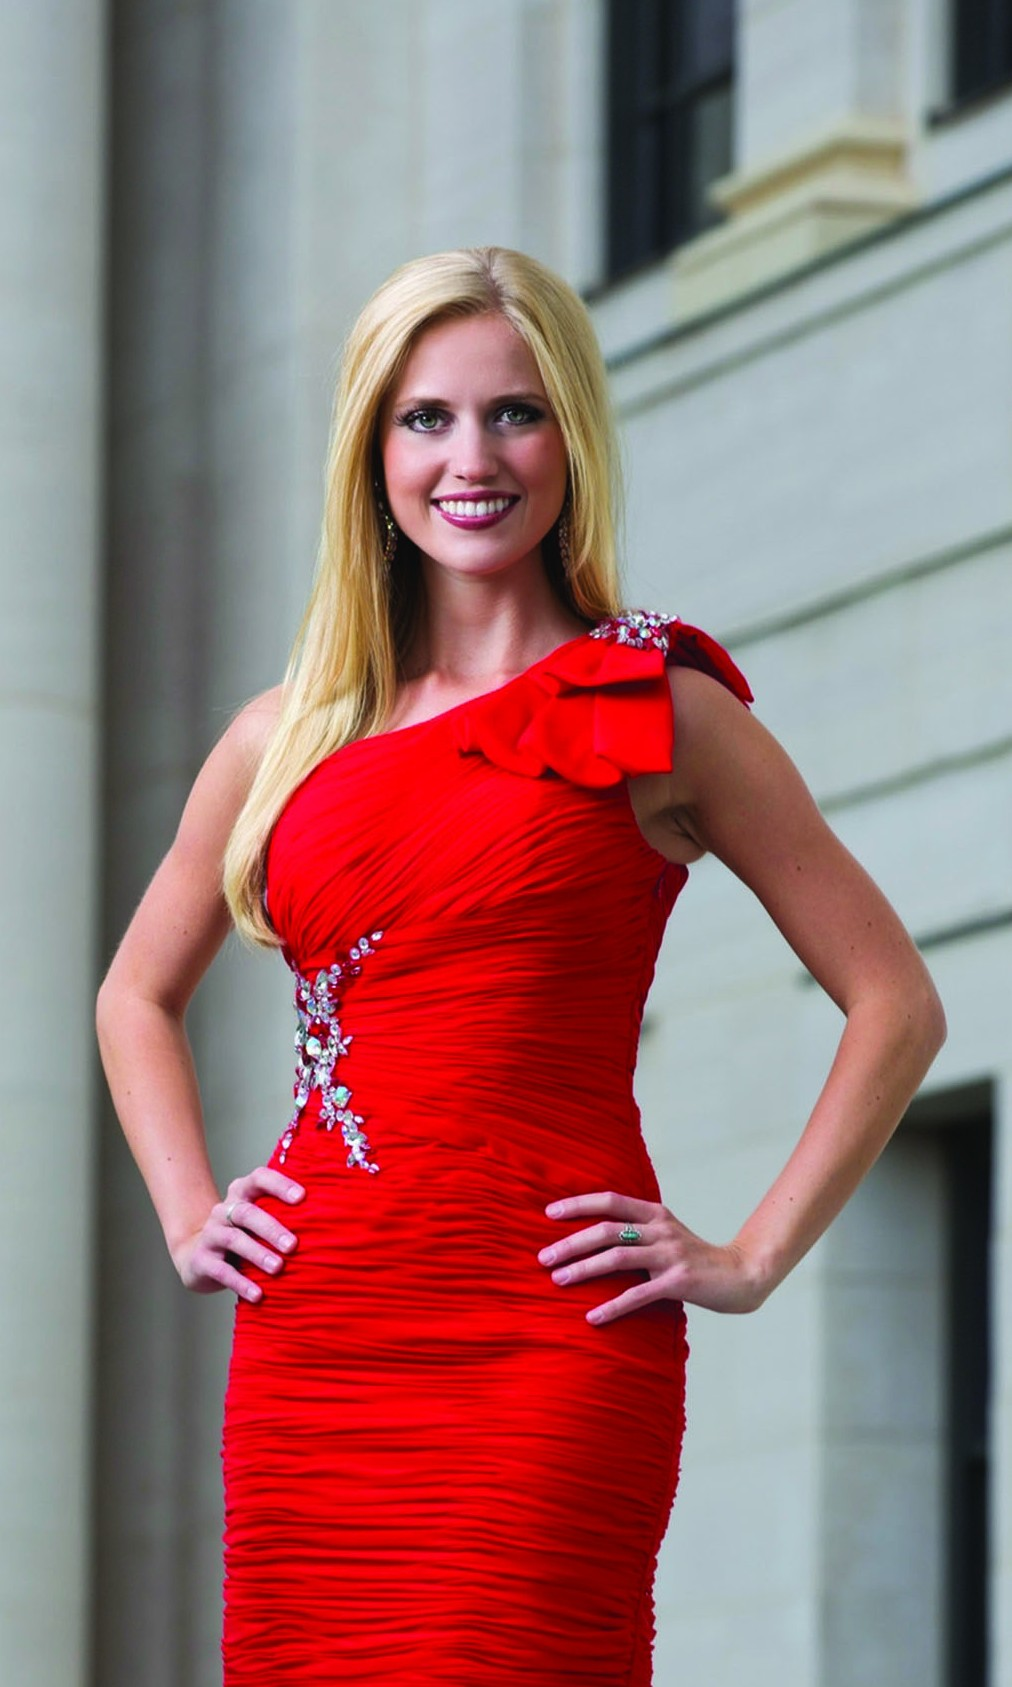 Miss Utah Kara Arnold, a University of Utah graduate with a degree in chemistry, hopes to become the next Miss America.